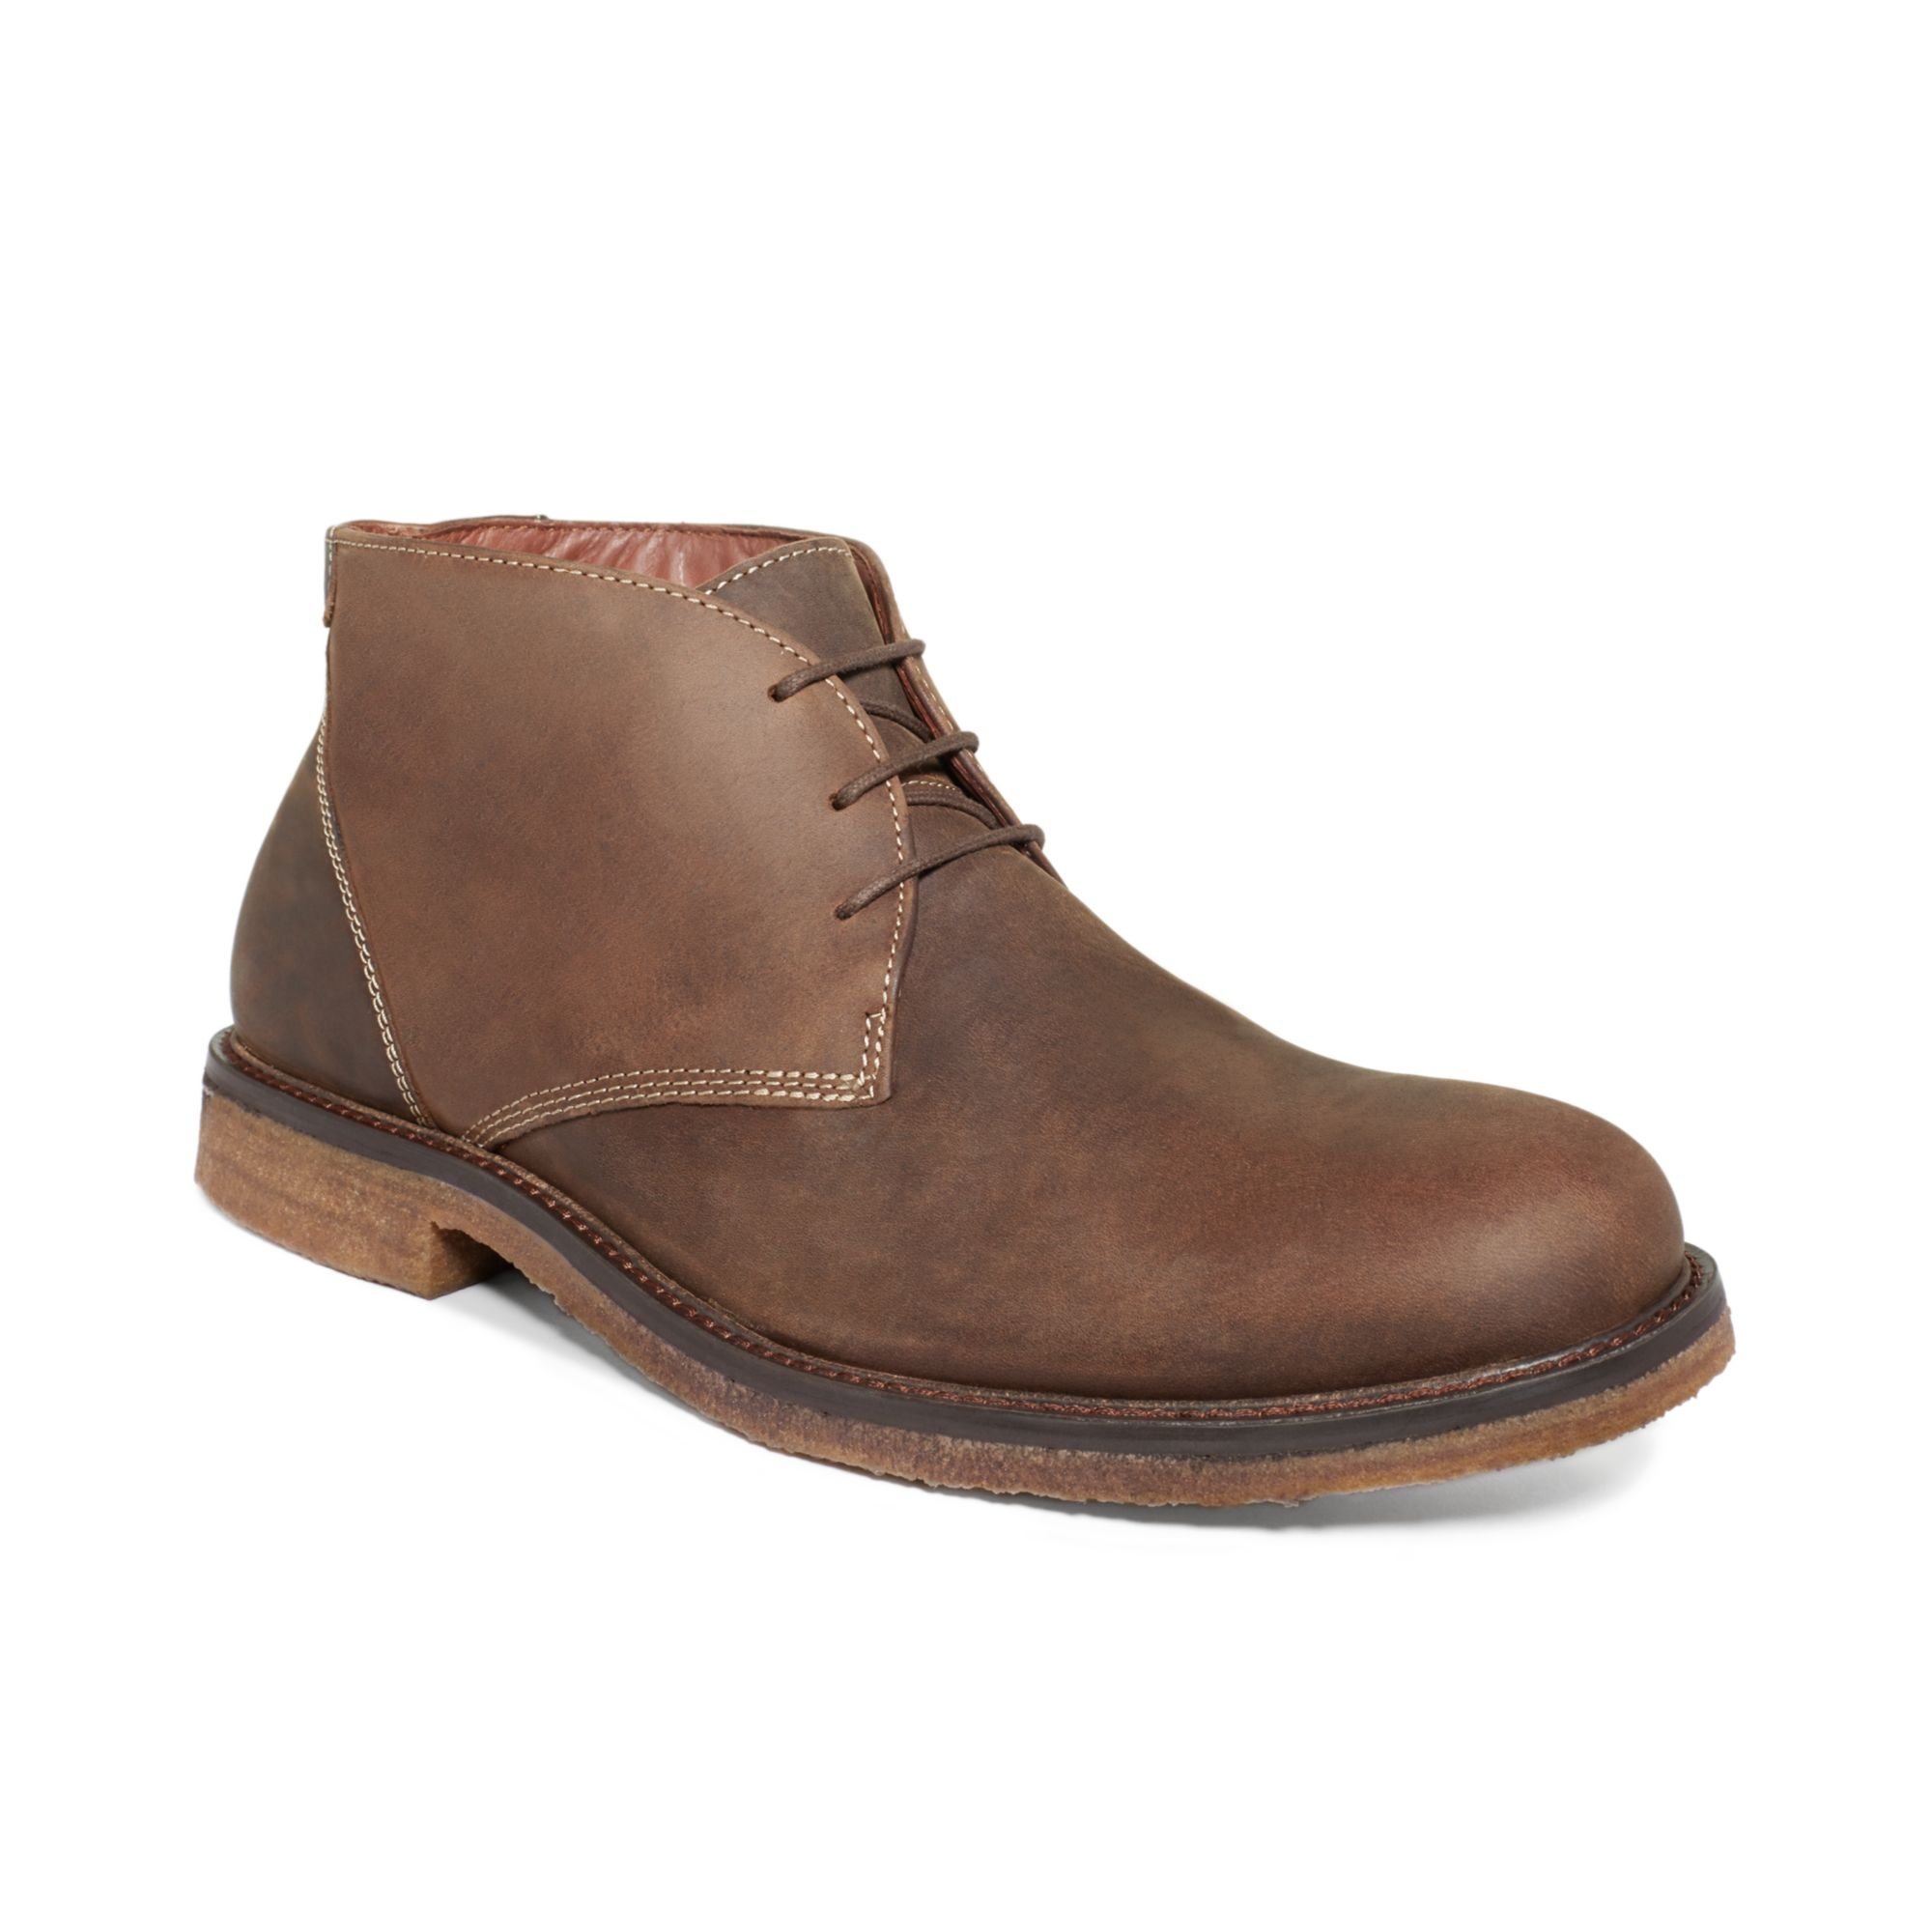 Johnston Amp Murphy Copeland Suede Chukka Boots In Brown For